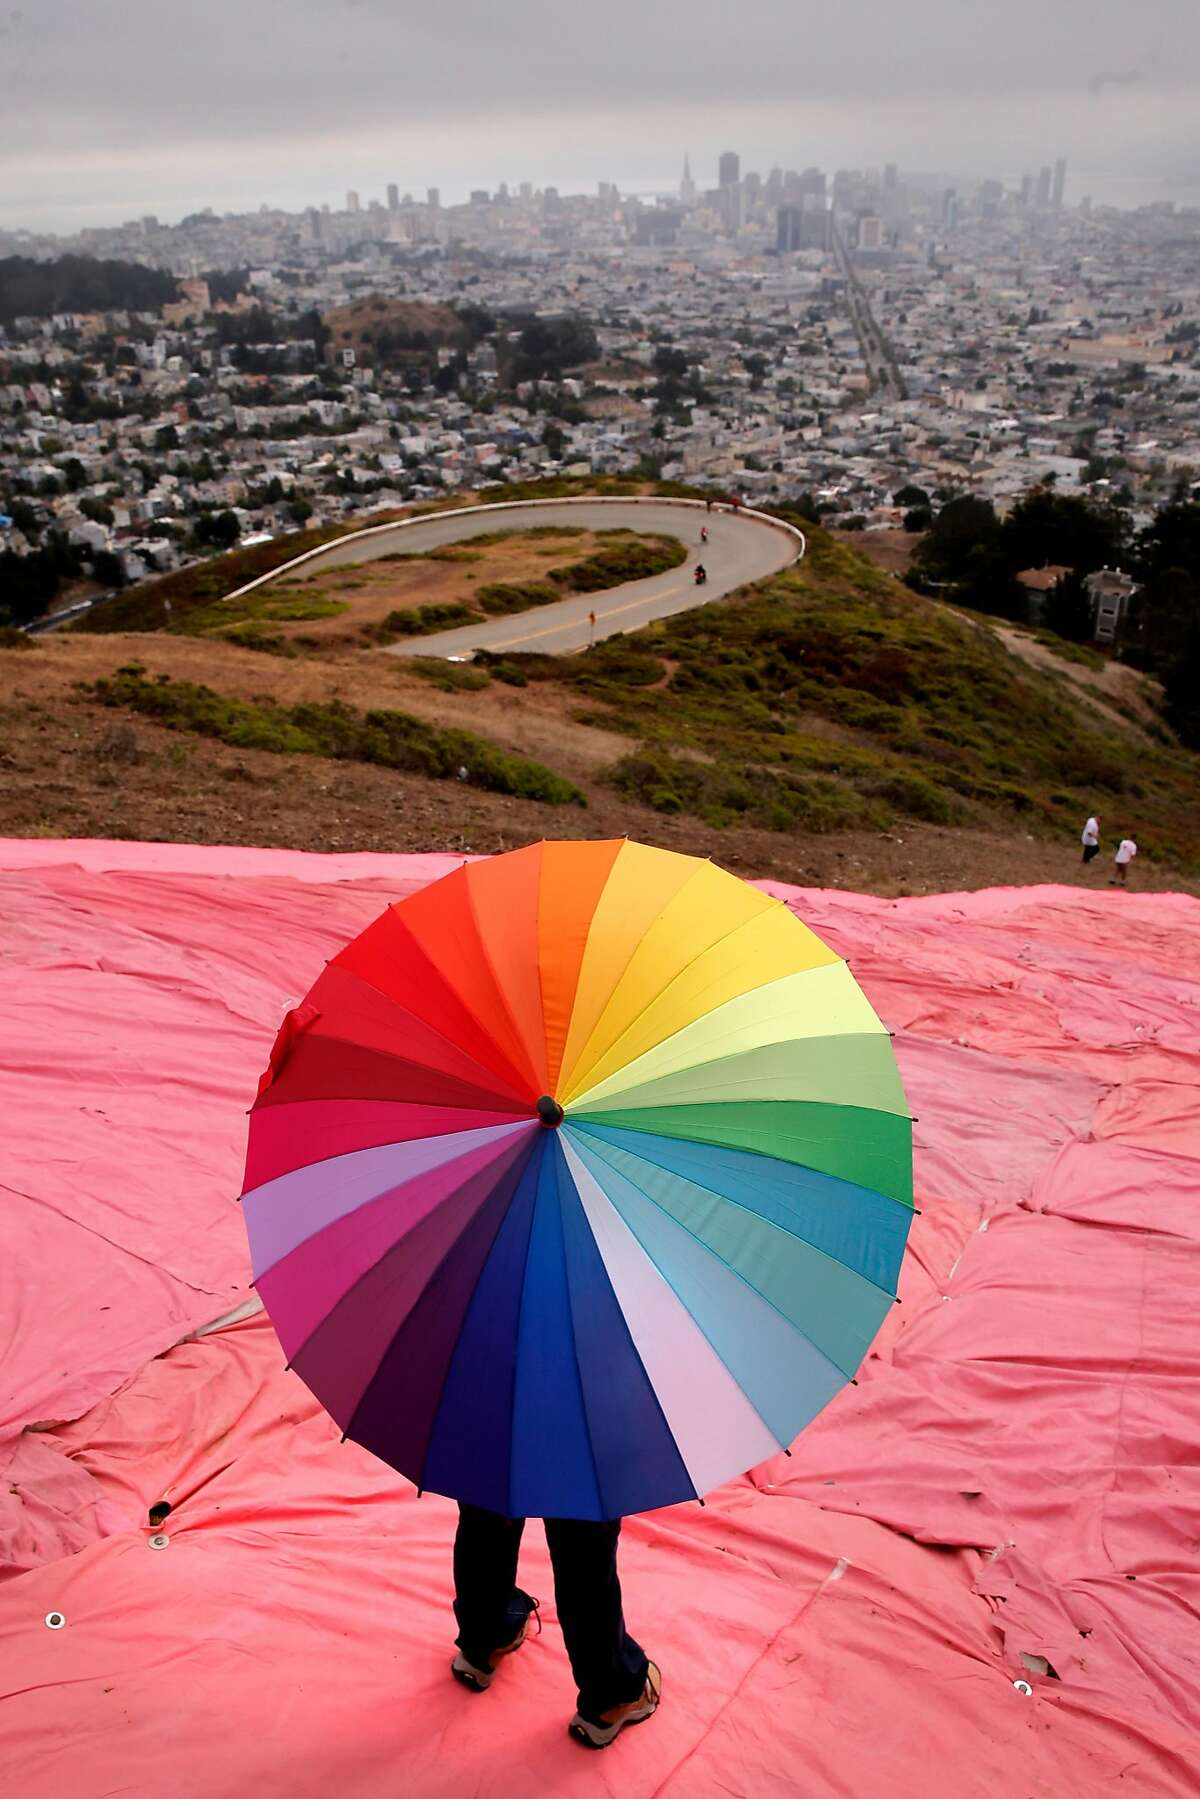 Heather Raich, of San Francisco looks out over the city as volunteers install the huge pink triangle atop Twin Peaks for all to see, representing the violence aimed at the LGBT community both in the past and today during Pride Weekend events as seen on Sat. June 27, 2015, in San Francisco, Calif.